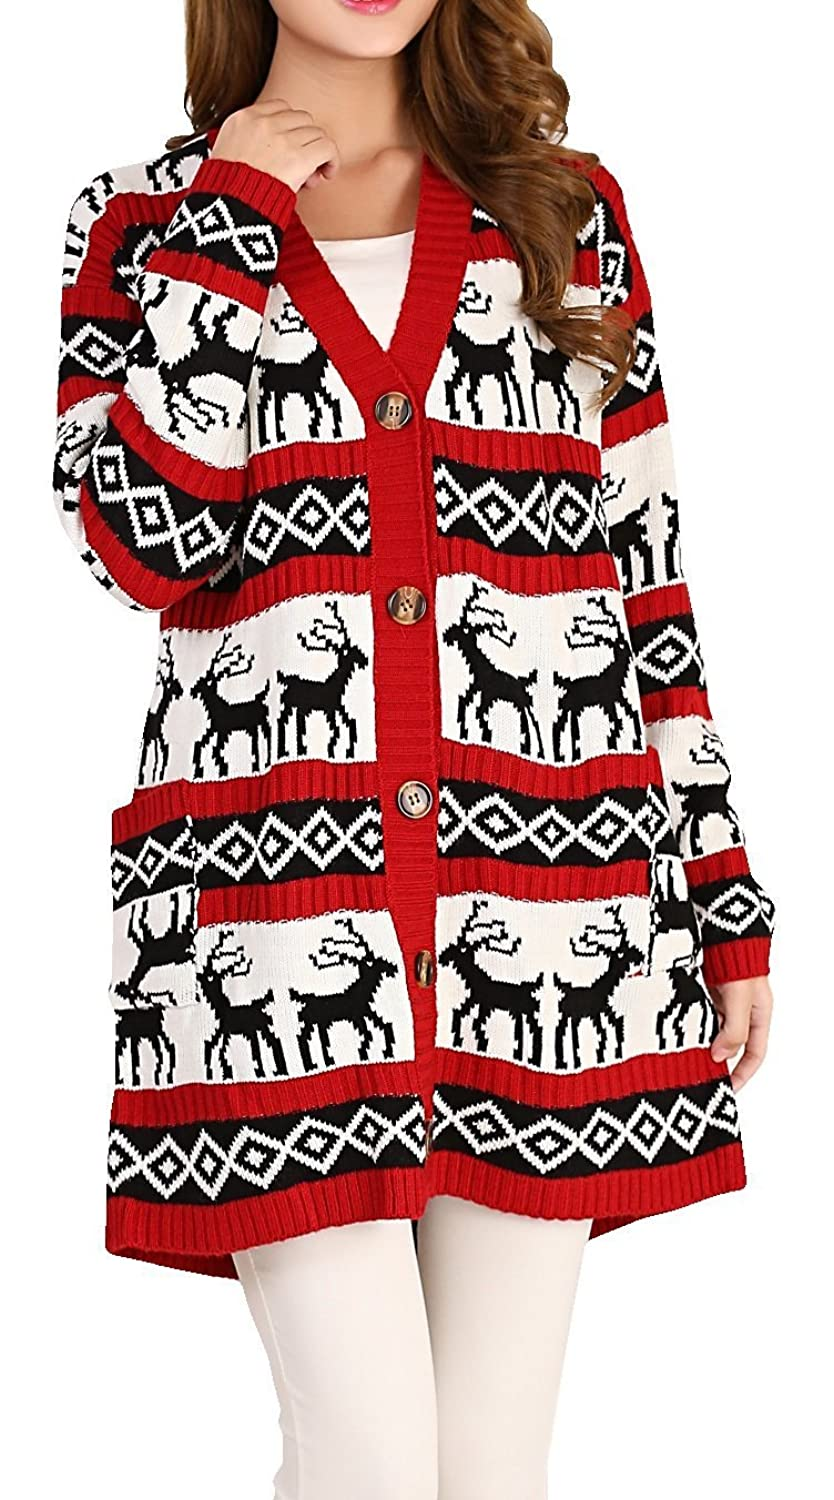 Amazon.com: Womens Oversized Christmas Reindeer Cardigan: Clothing